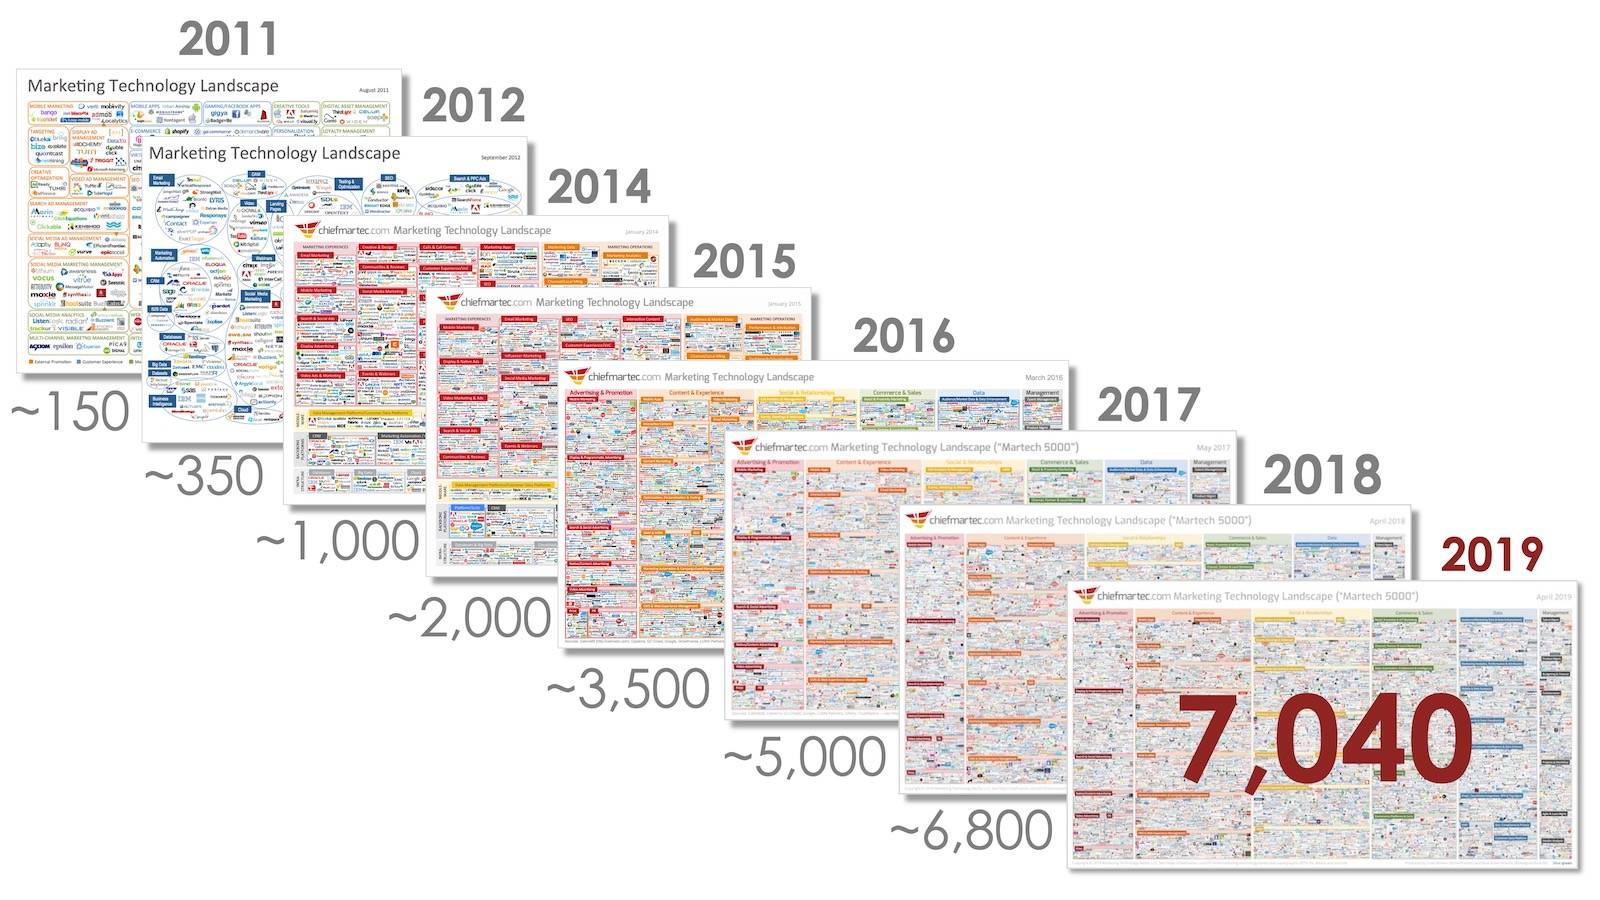 The number of marketing technology solutions increasing from about 150 in 2011 to more than 7,000 in 2019.